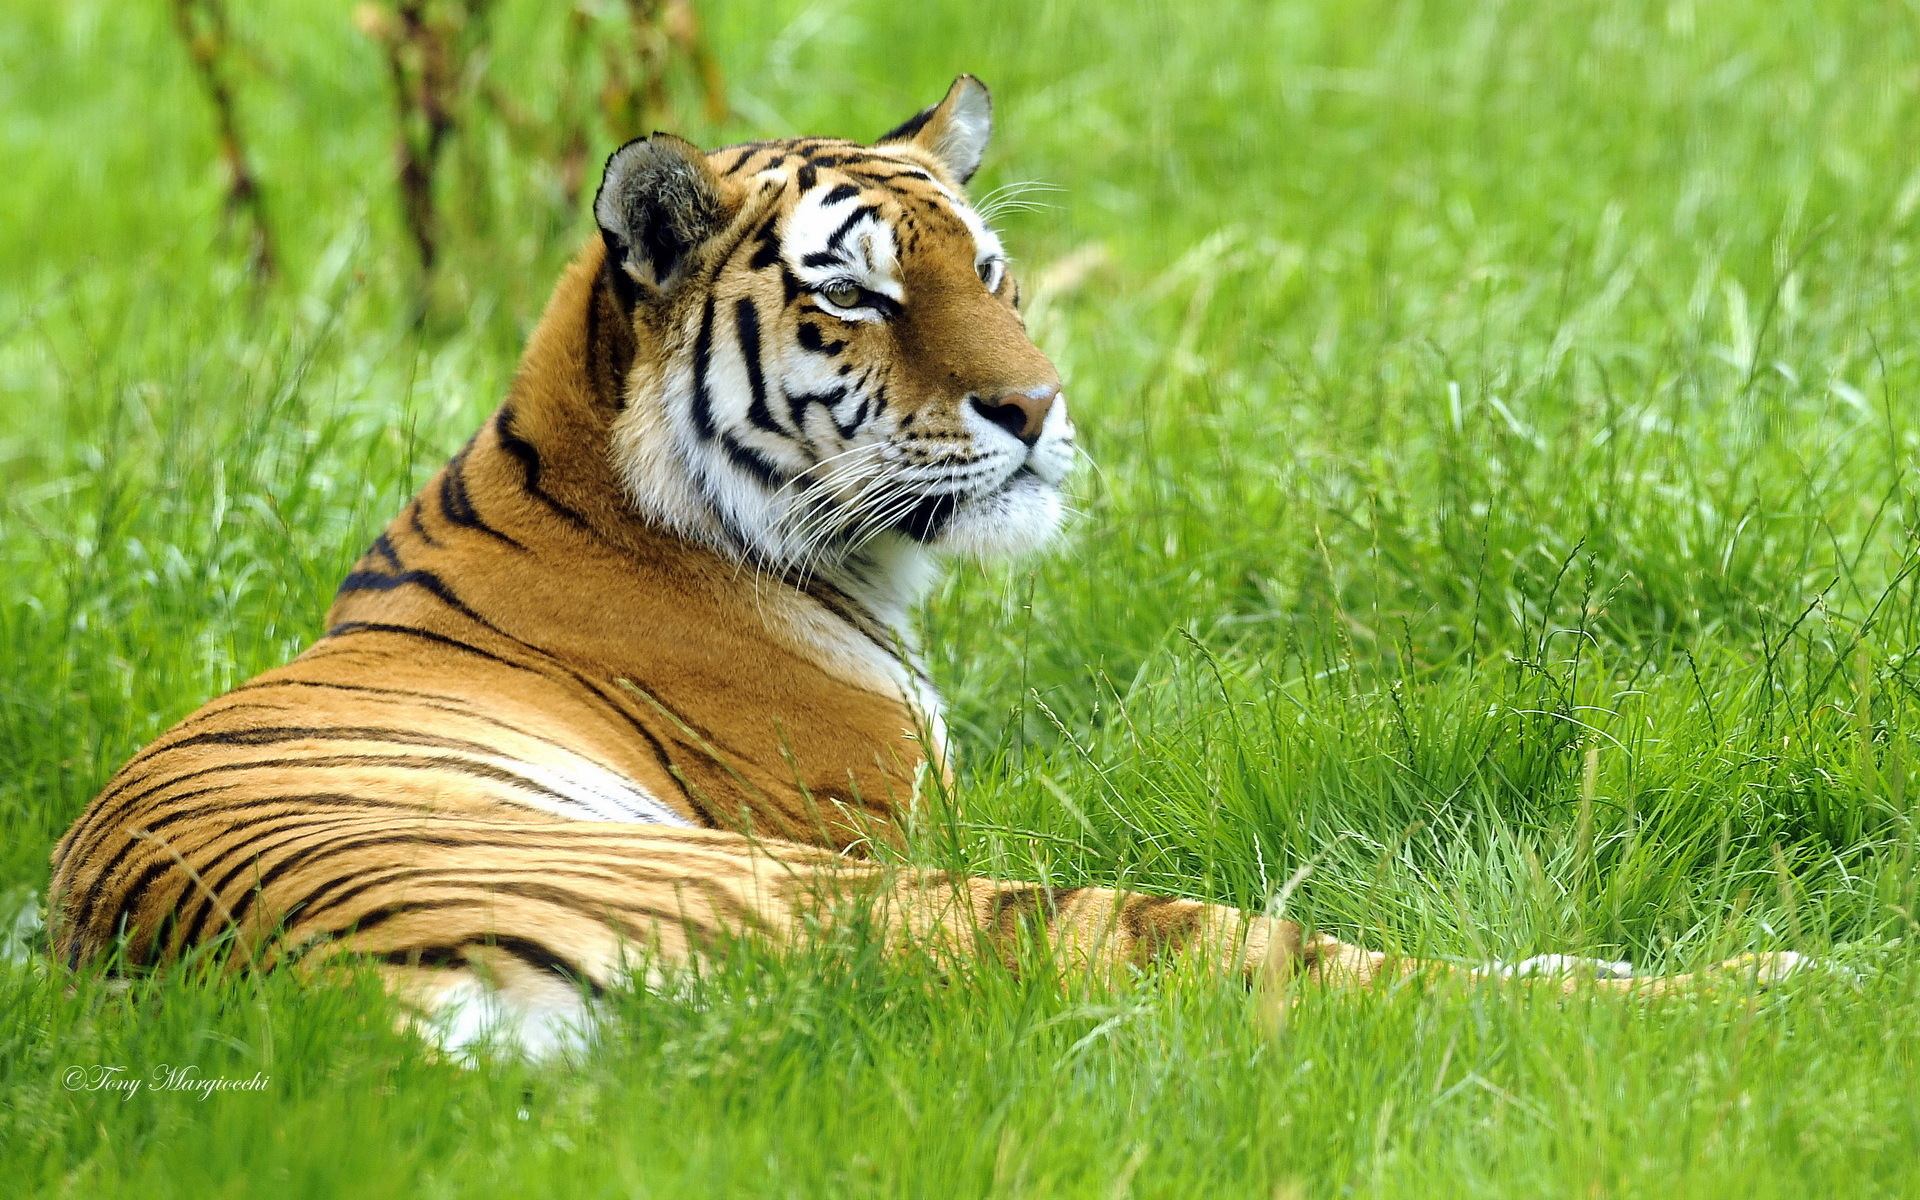 Tiger Hd Wallpaper Background Image 1920x1200 Id 275702